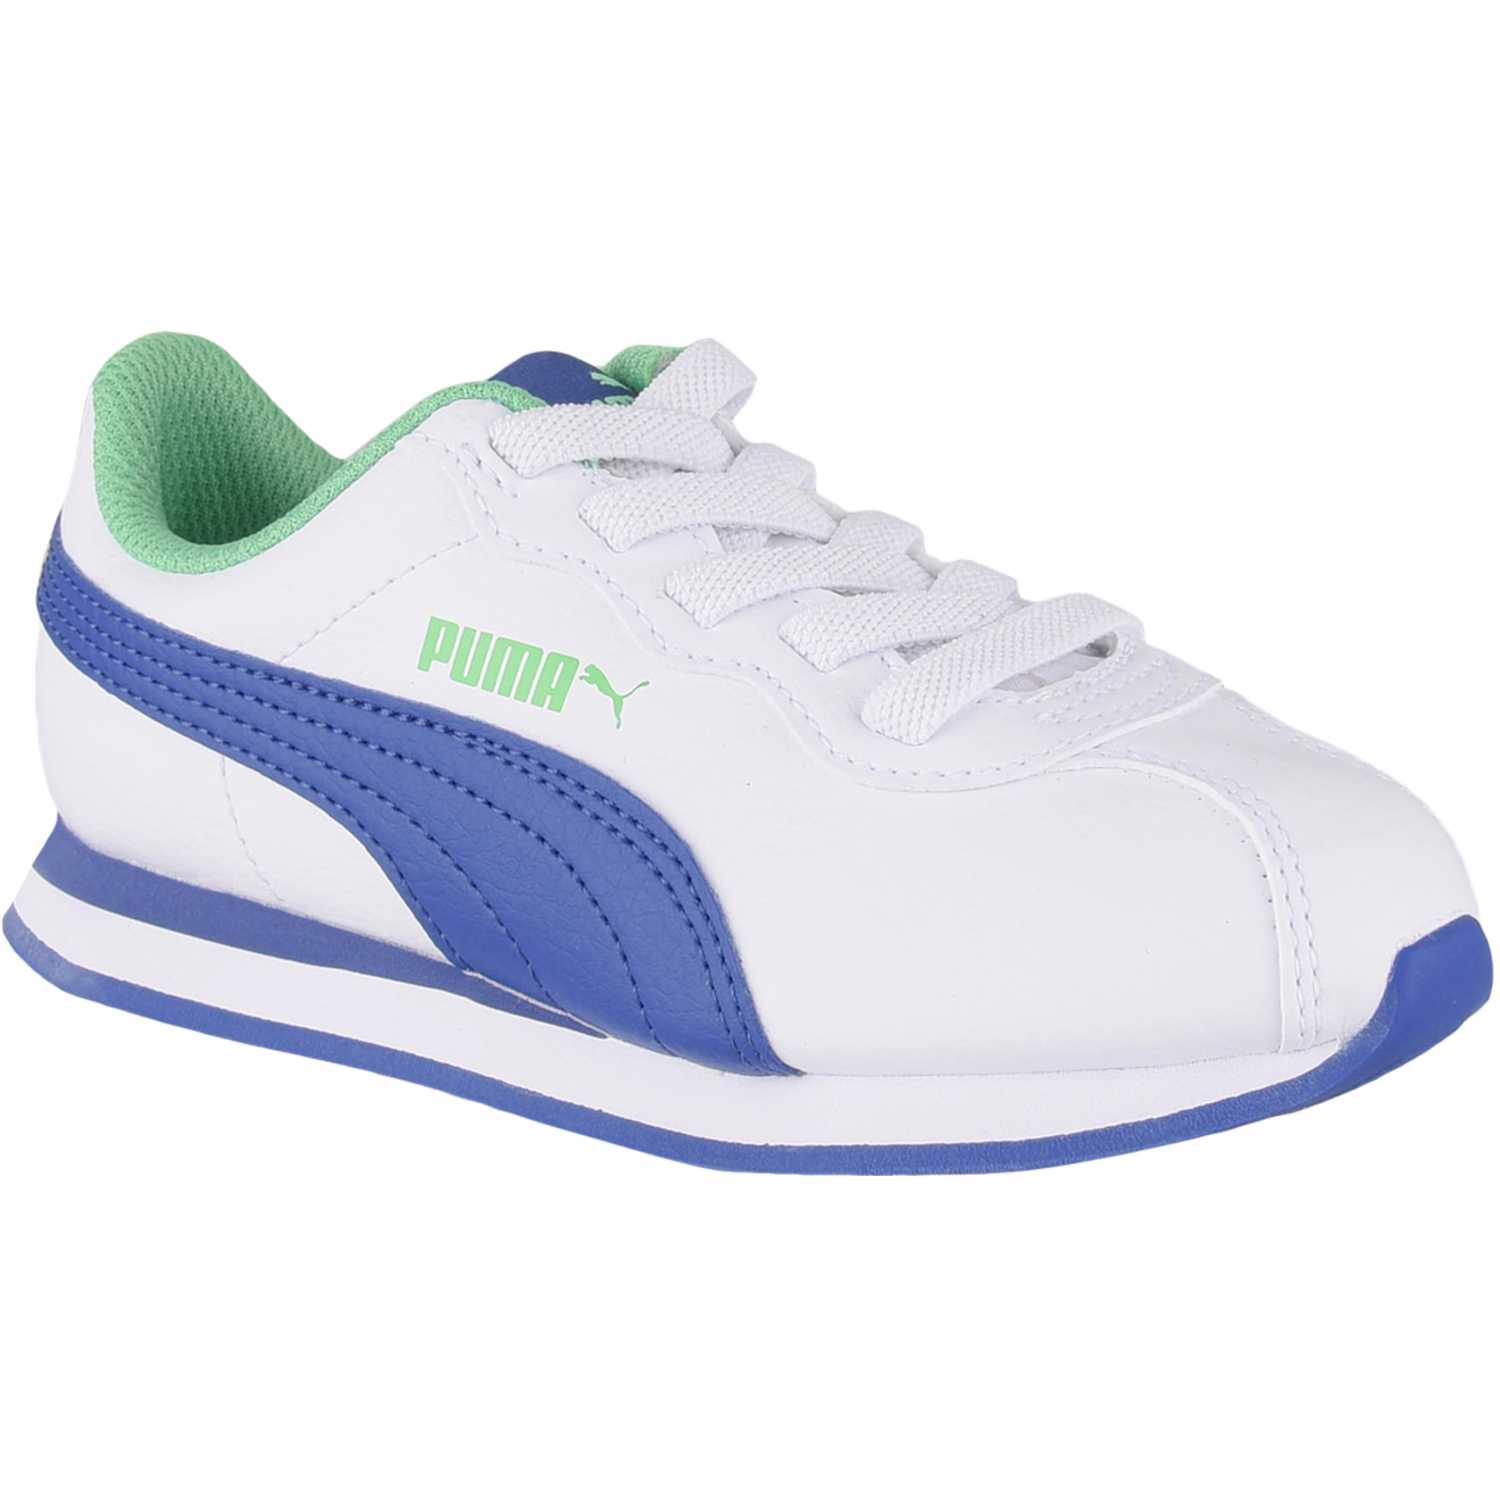 Puma puma turin ii ac ps Blanco / azul Walking